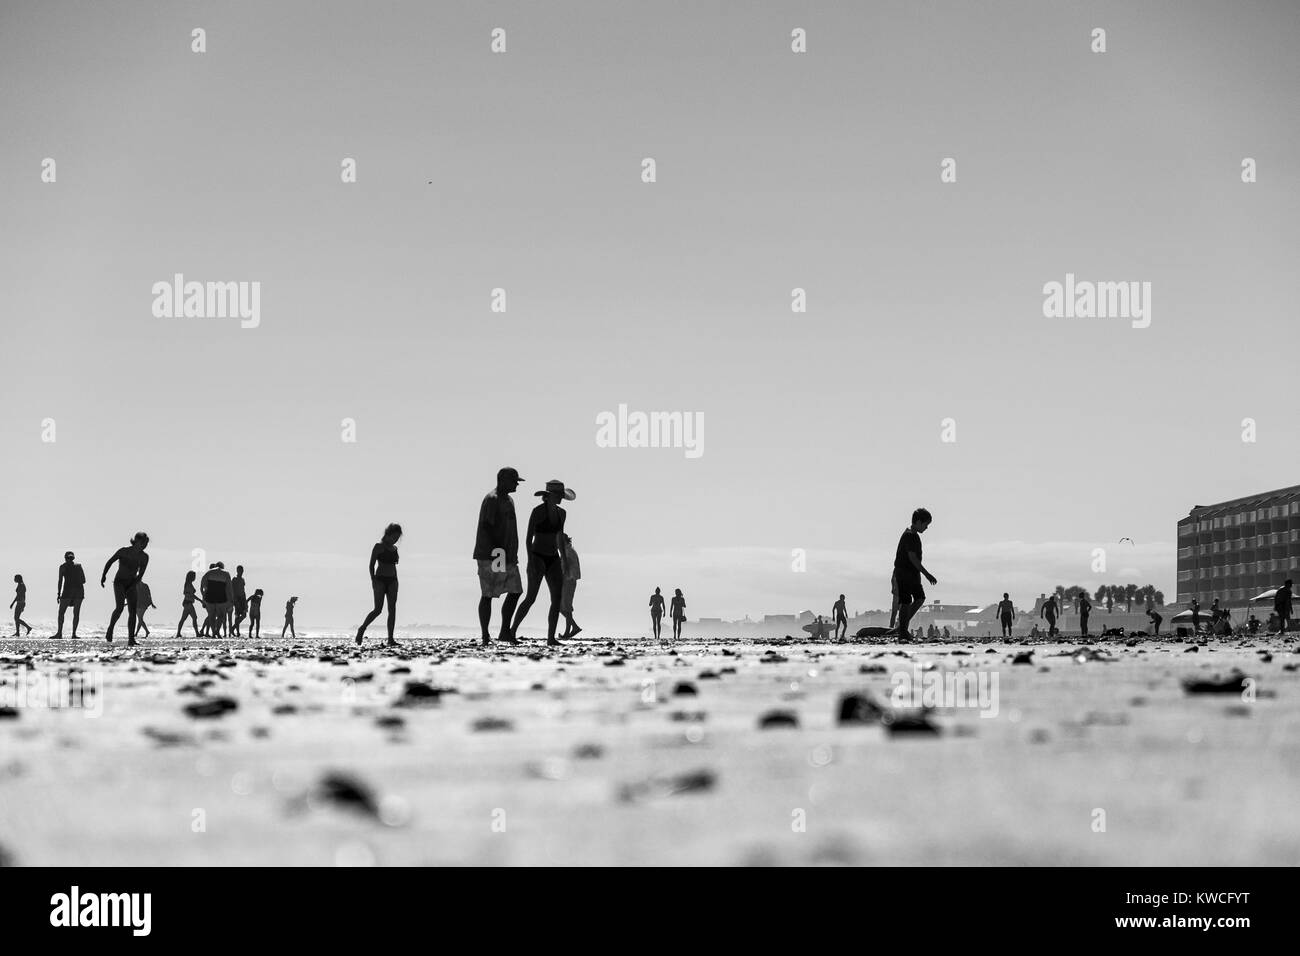 people in swimsuits walking on the beach on a hot summer day - Stock Image